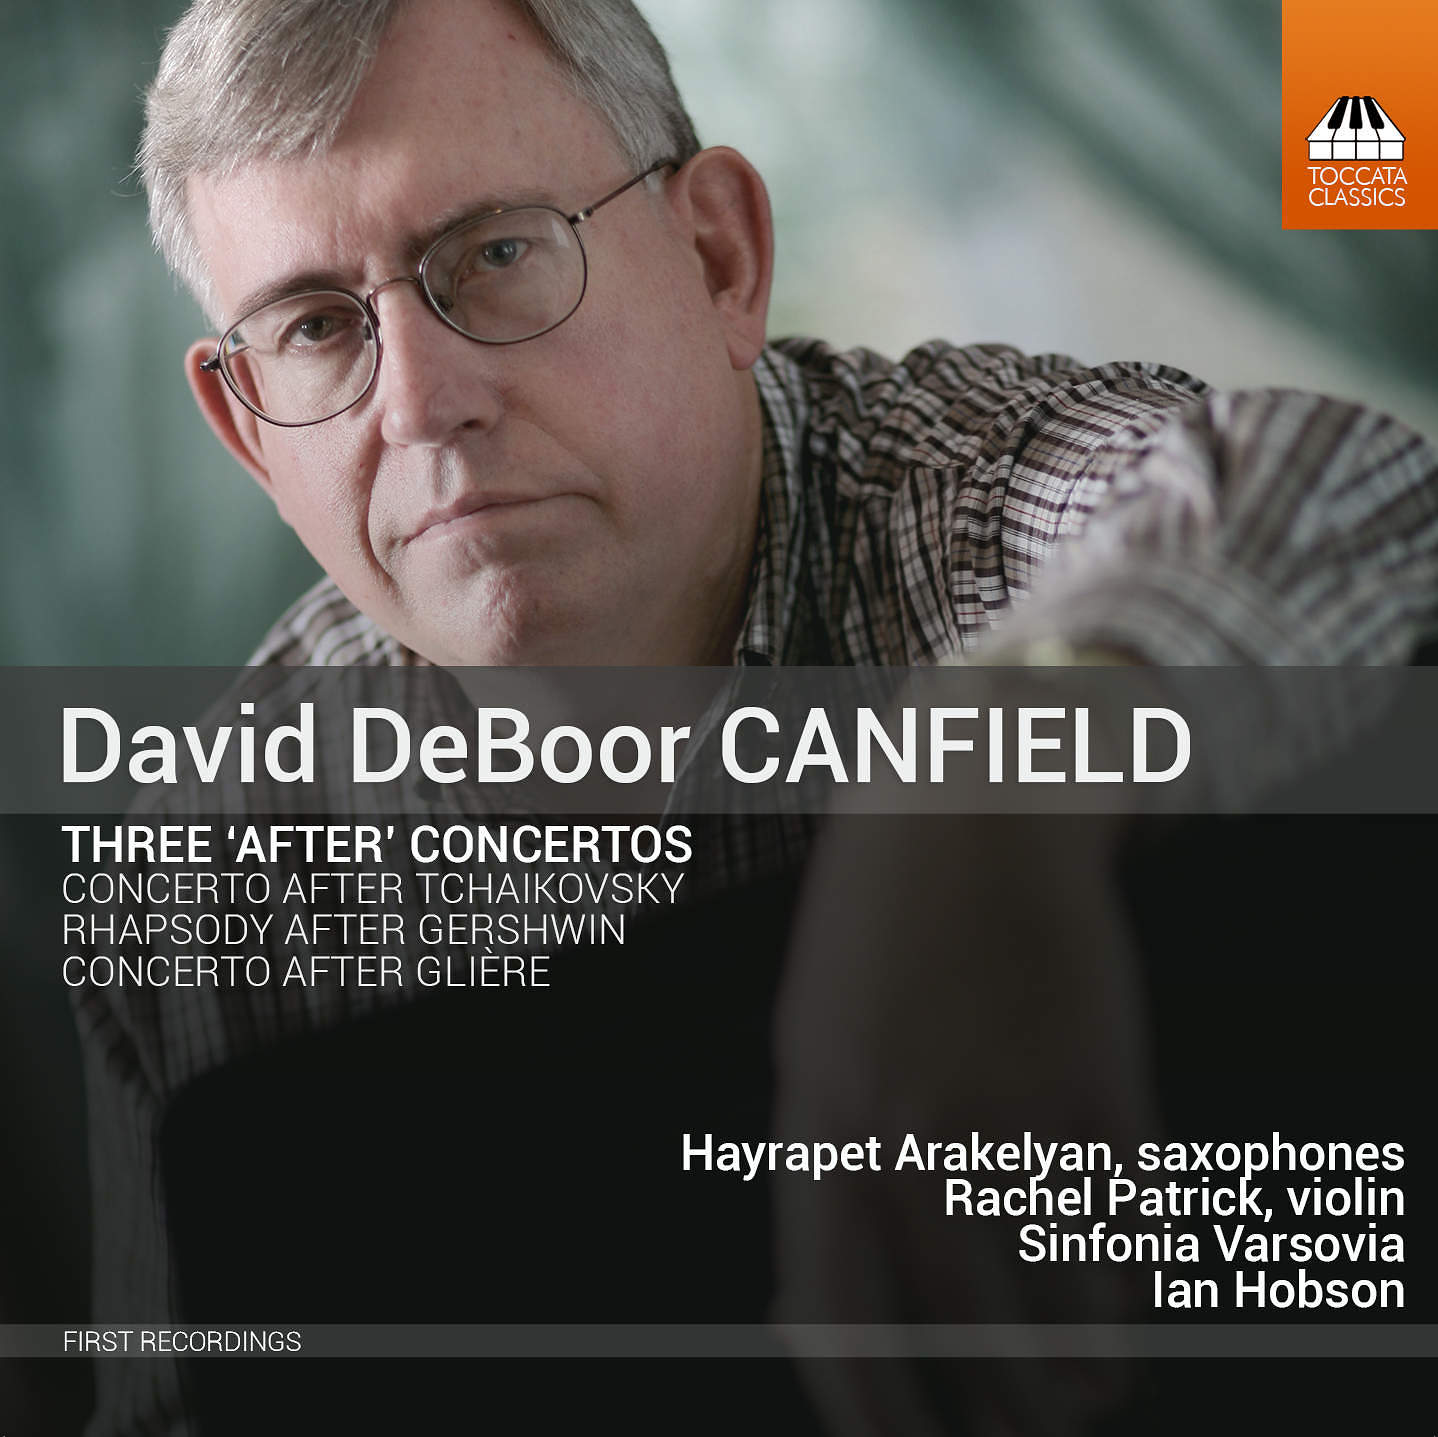 David DeBoor Canfield: Three 'After' Concertos